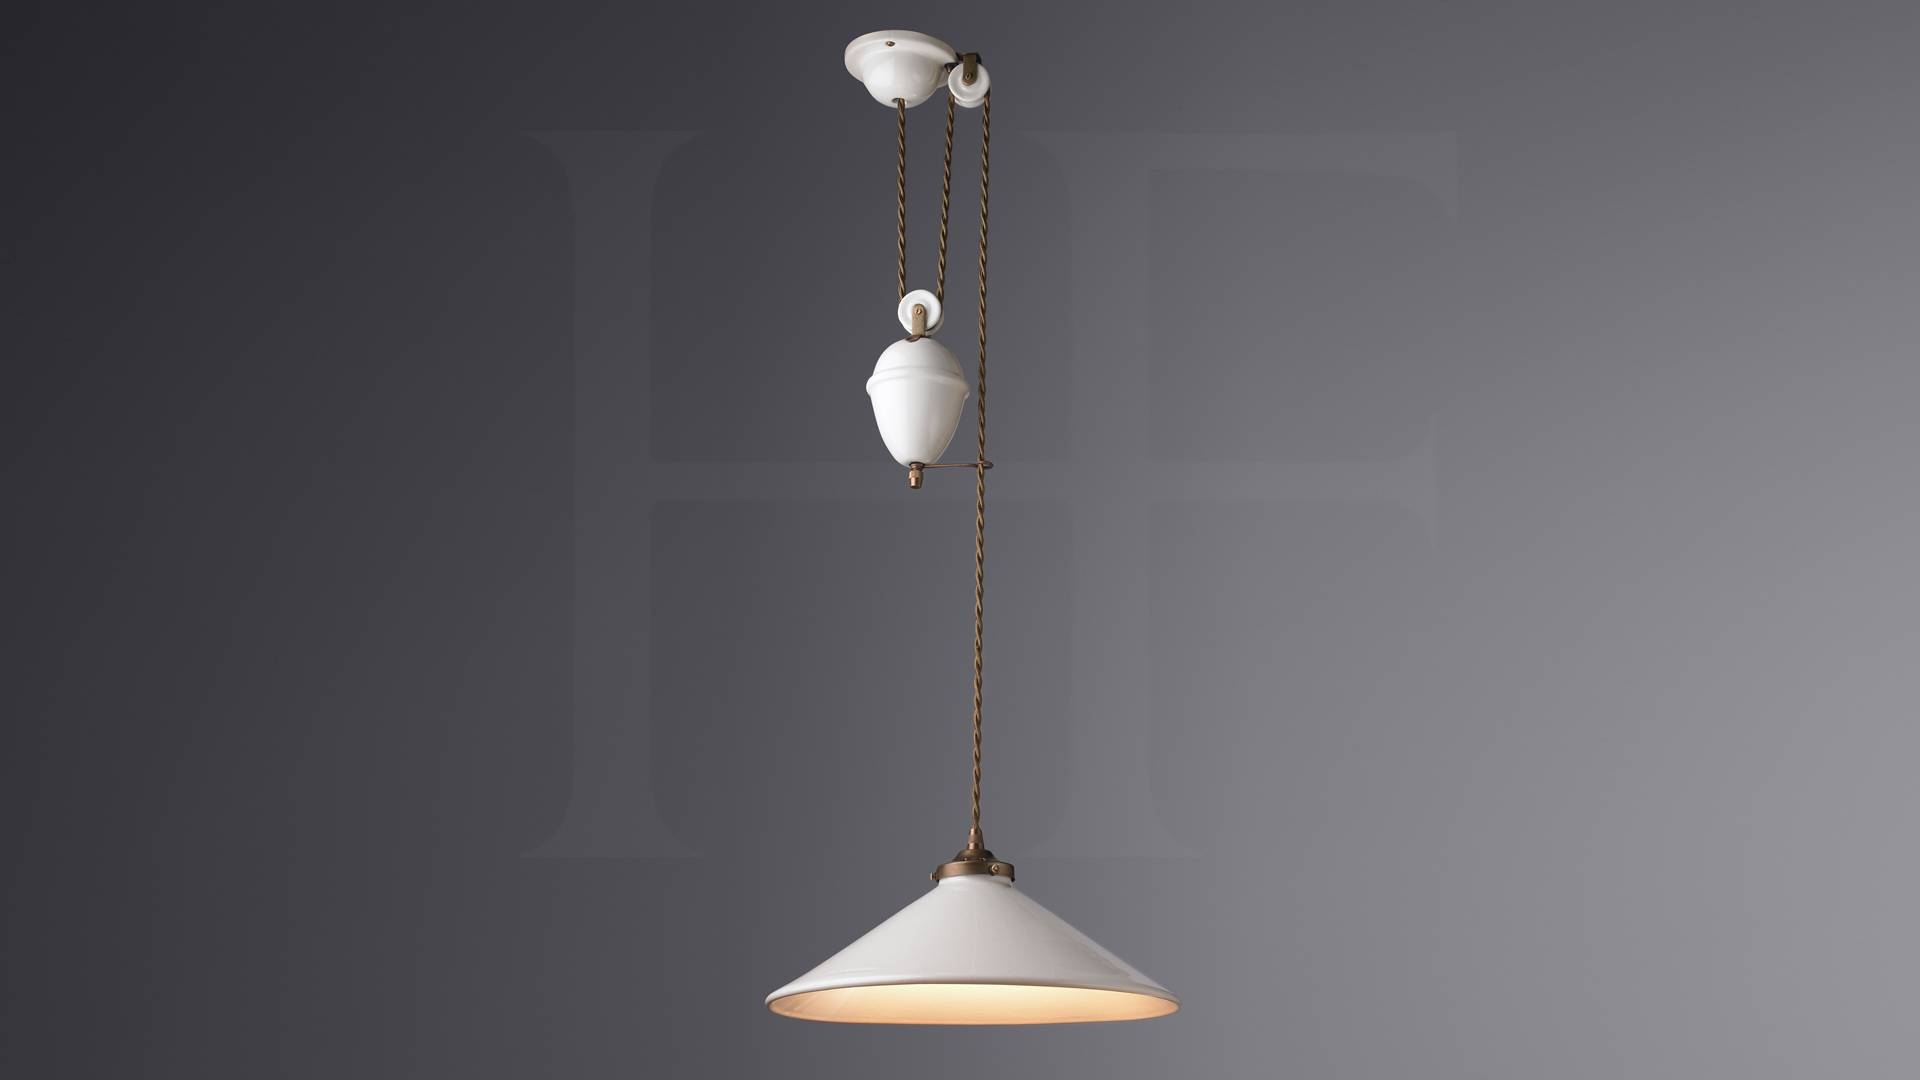 French Ceramic Rise & Fall, With Weightshector Finch Lighting pertaining to Rise and Fall Pendants (Image 6 of 15)